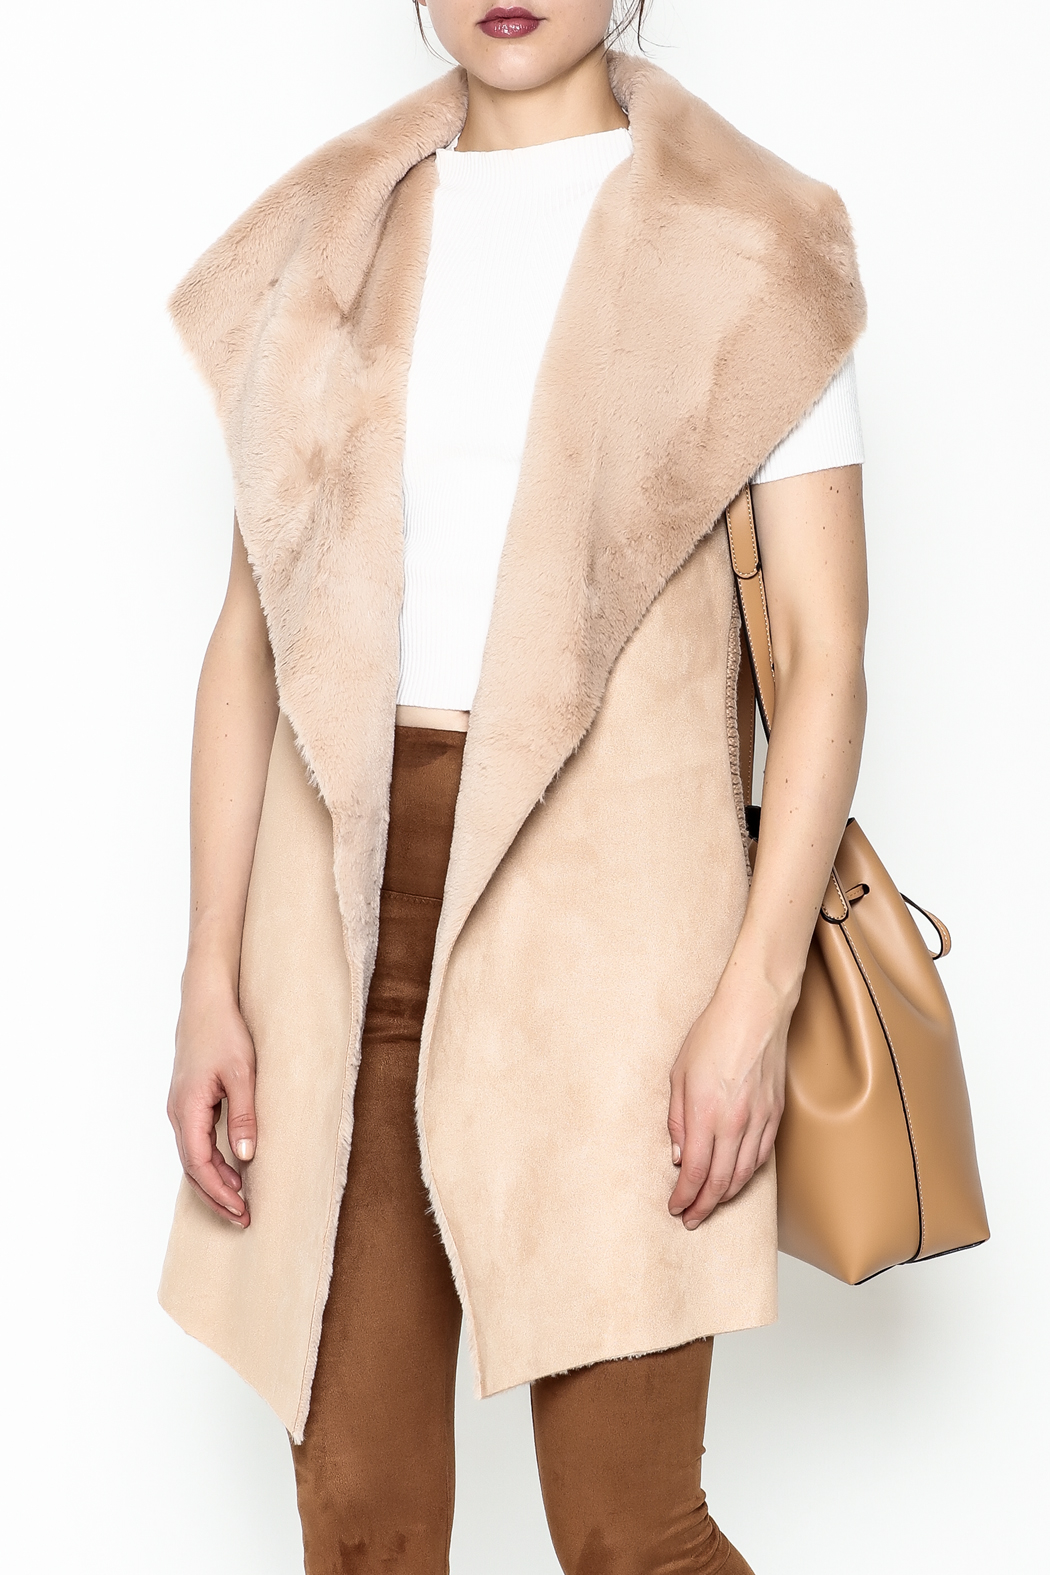 on12th Faux Fur Vest - Main Image